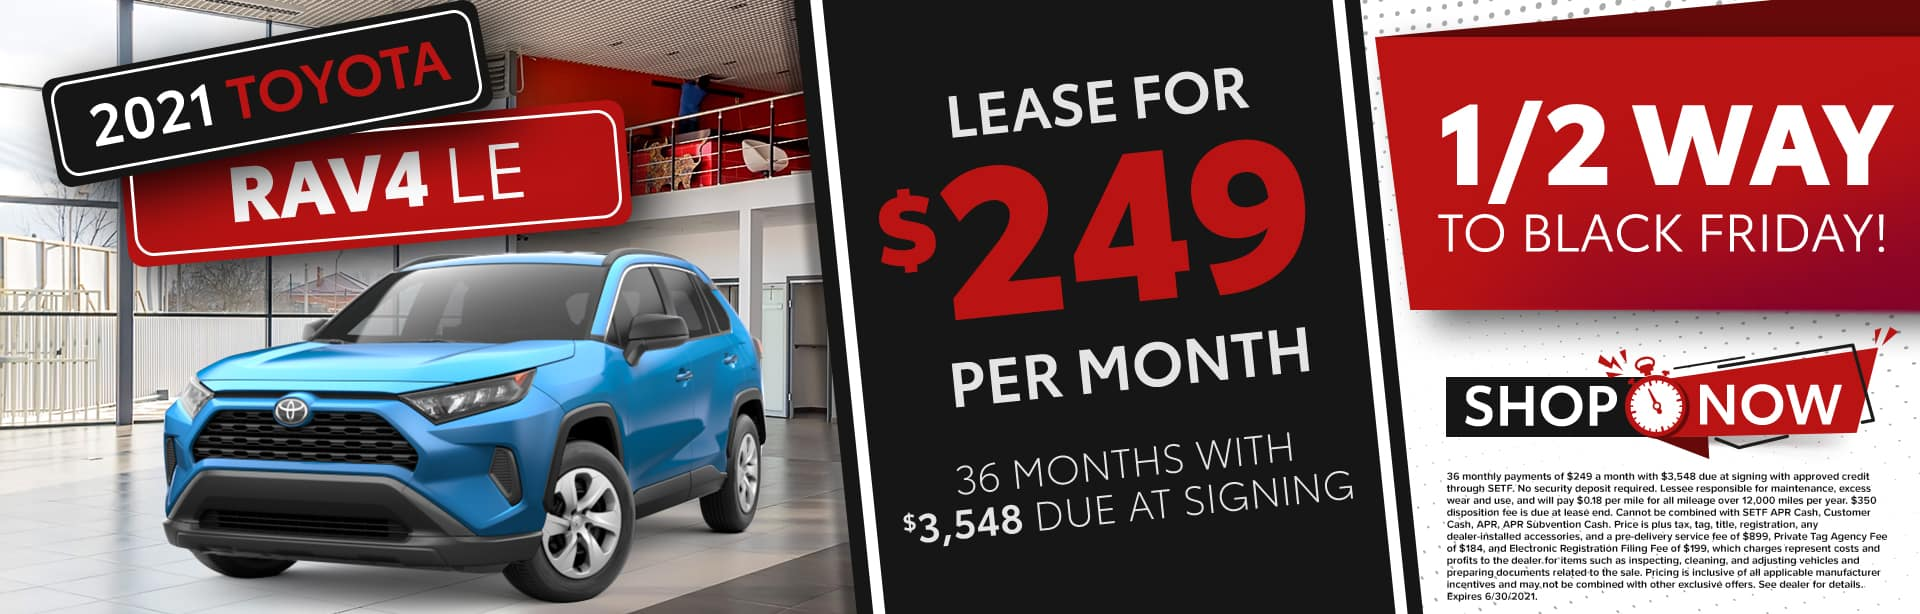 1/2 Way To Black Friday   2021 Toyota RAV4 LE   Lease For $249 Per Month For 36 Months With $3,548 Due At Signing